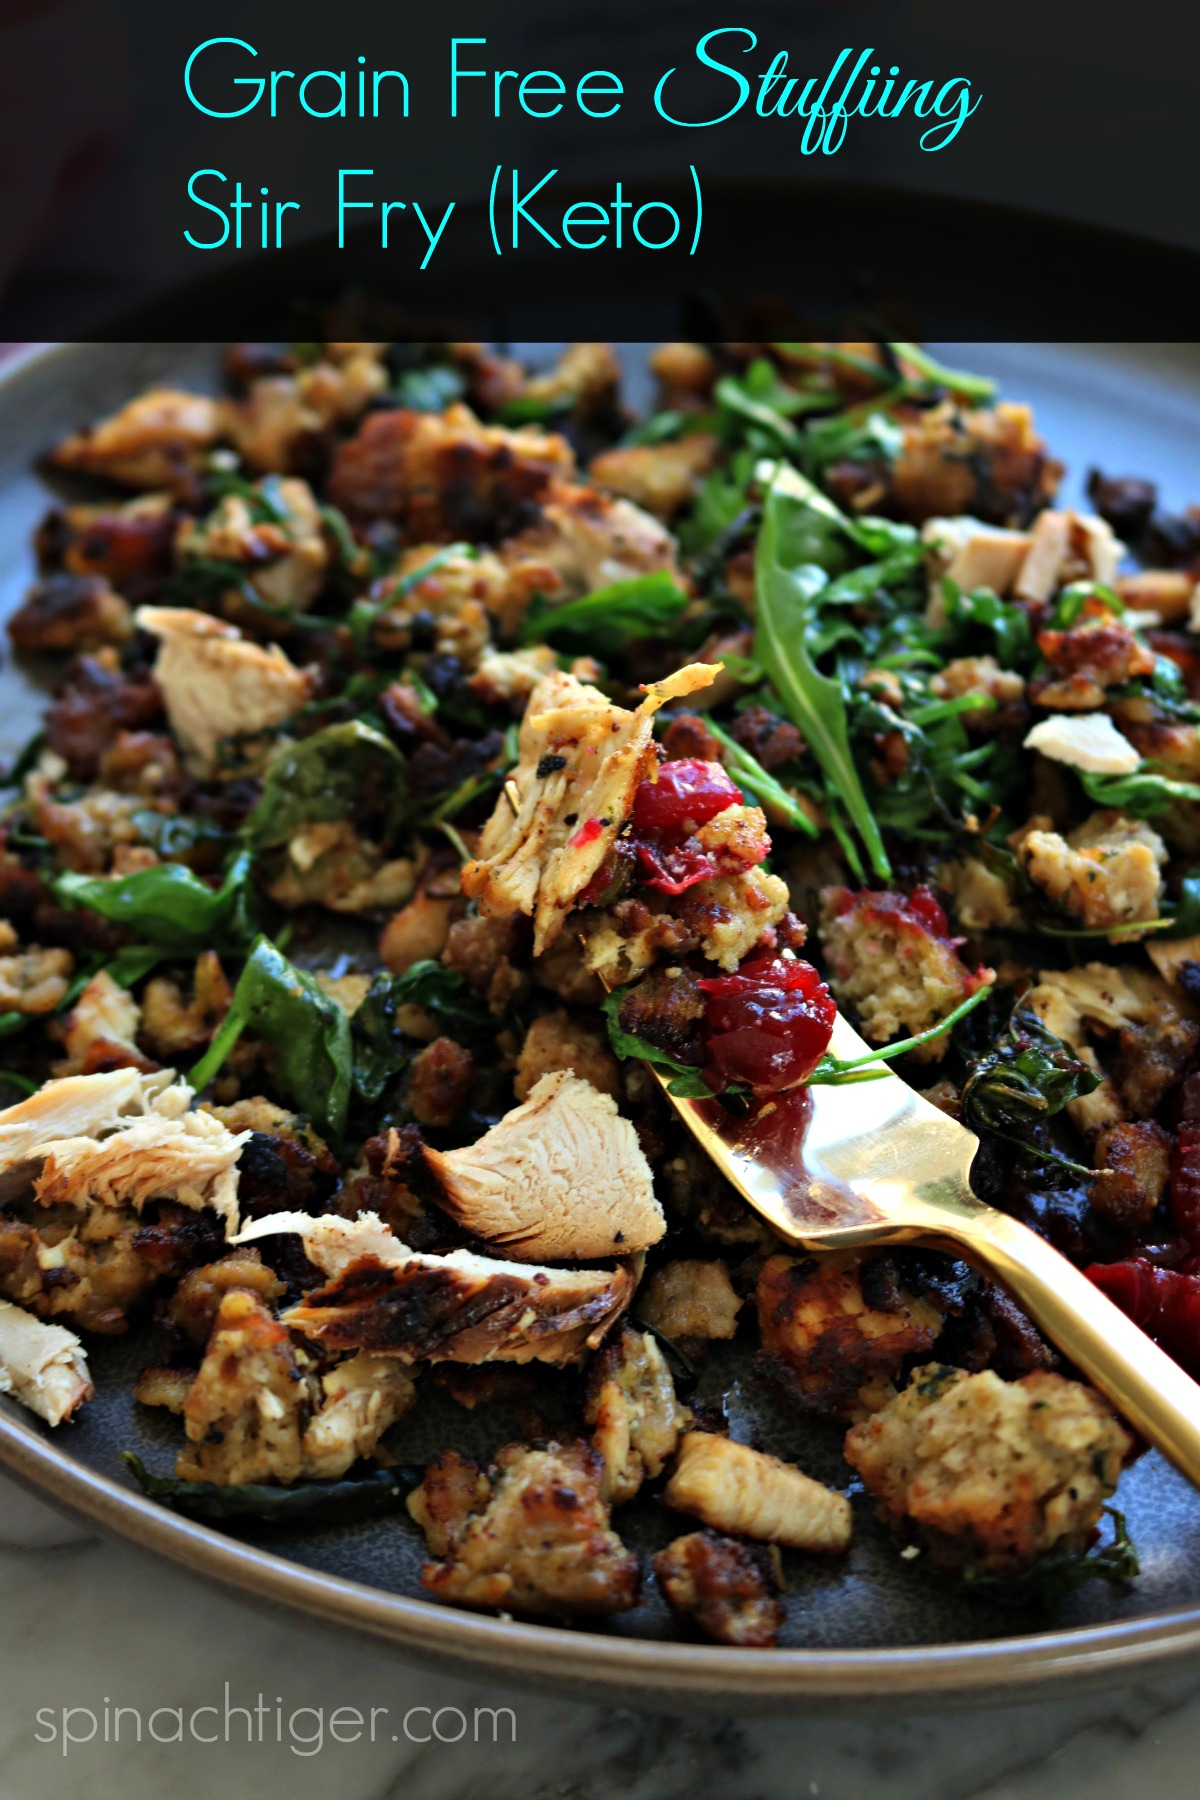 Grain Free Keto Stuffing Hash made with almond flour biscuit cubes, arugula, sausage, chopped turkey. So delicious and the perfect thing to do with Thanksgiving leftovers. #spinchtiger #thanksgivingleftovers #ketorecipe via @angelaroberts